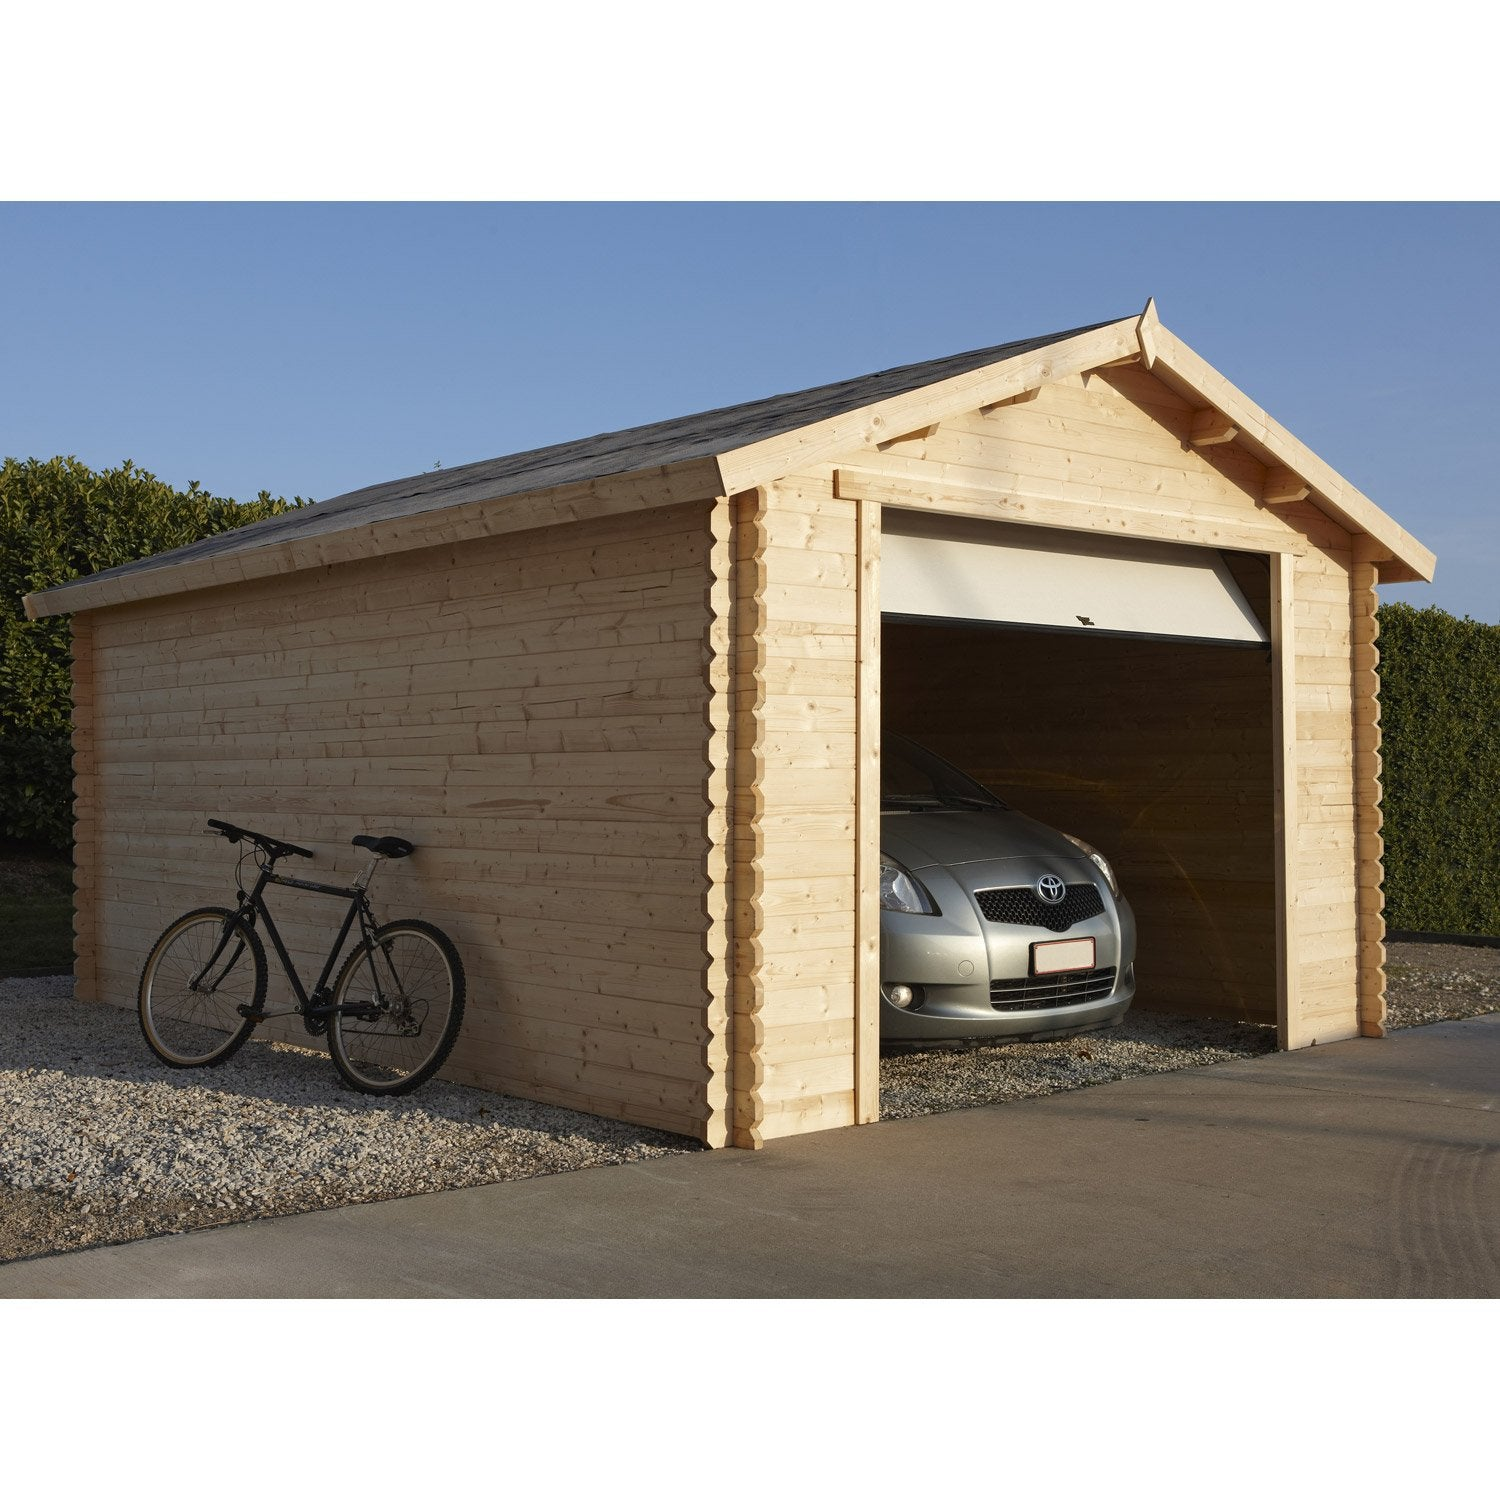 Garage bois nova 1 voiture m leroy merlin for Garage en bois 20m2